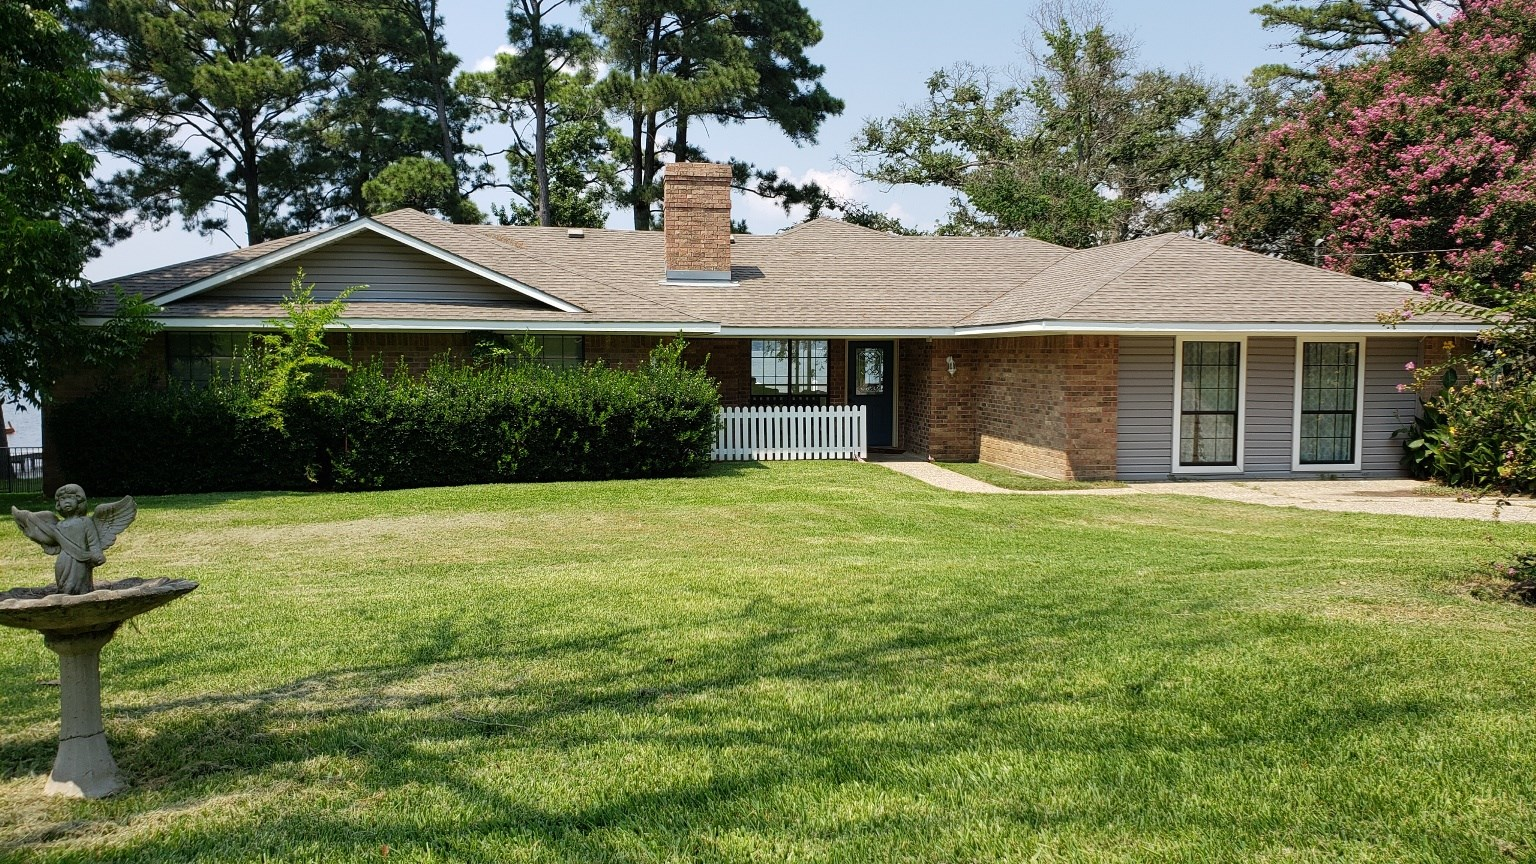 WATERFRONT VACATION HOME FOR SALE ON LAKE PALESTINE, EAST TX